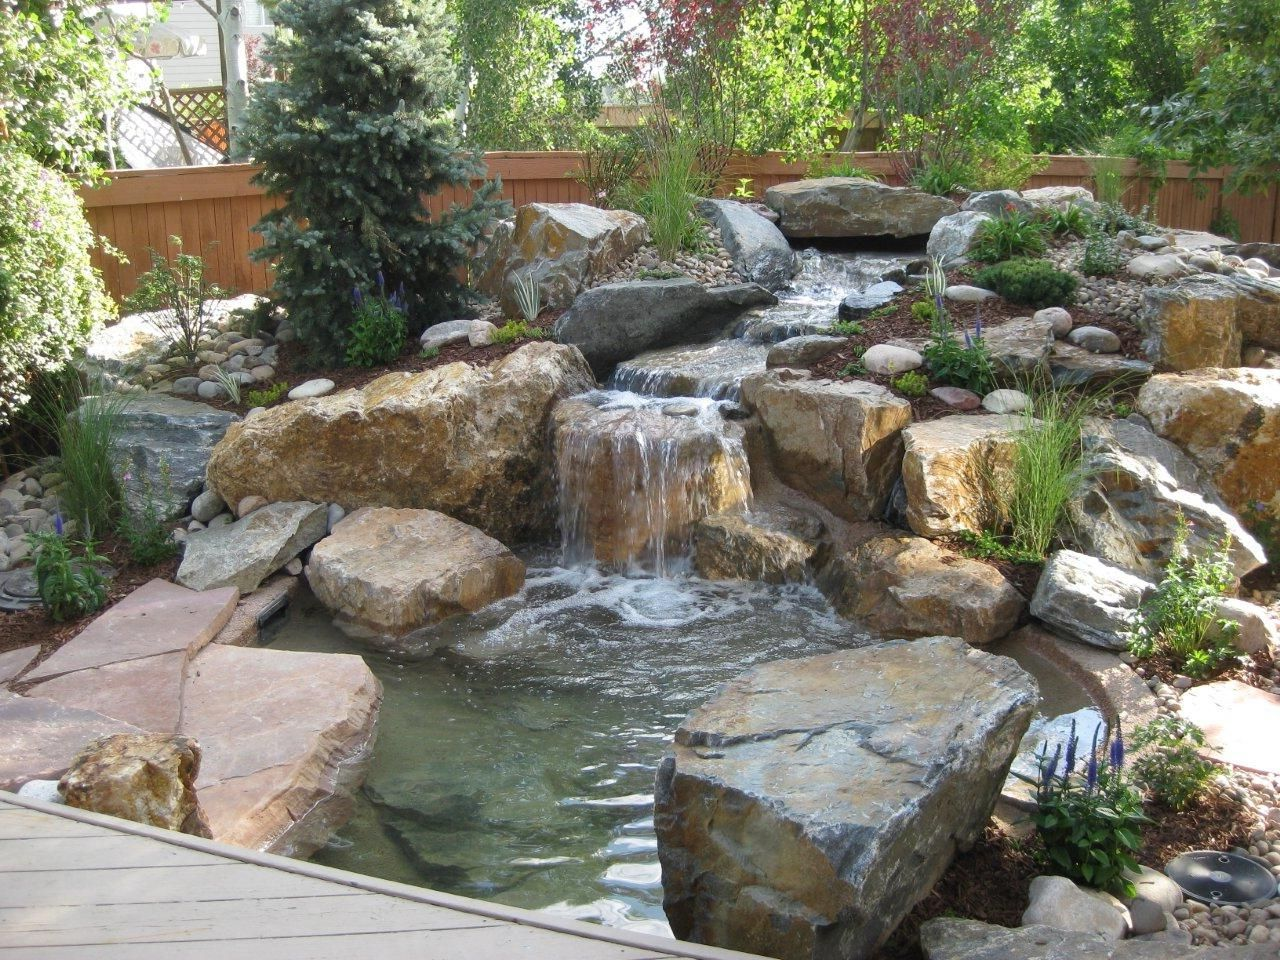 Backyard water features in japanese garden concept for Garden fountains and water features